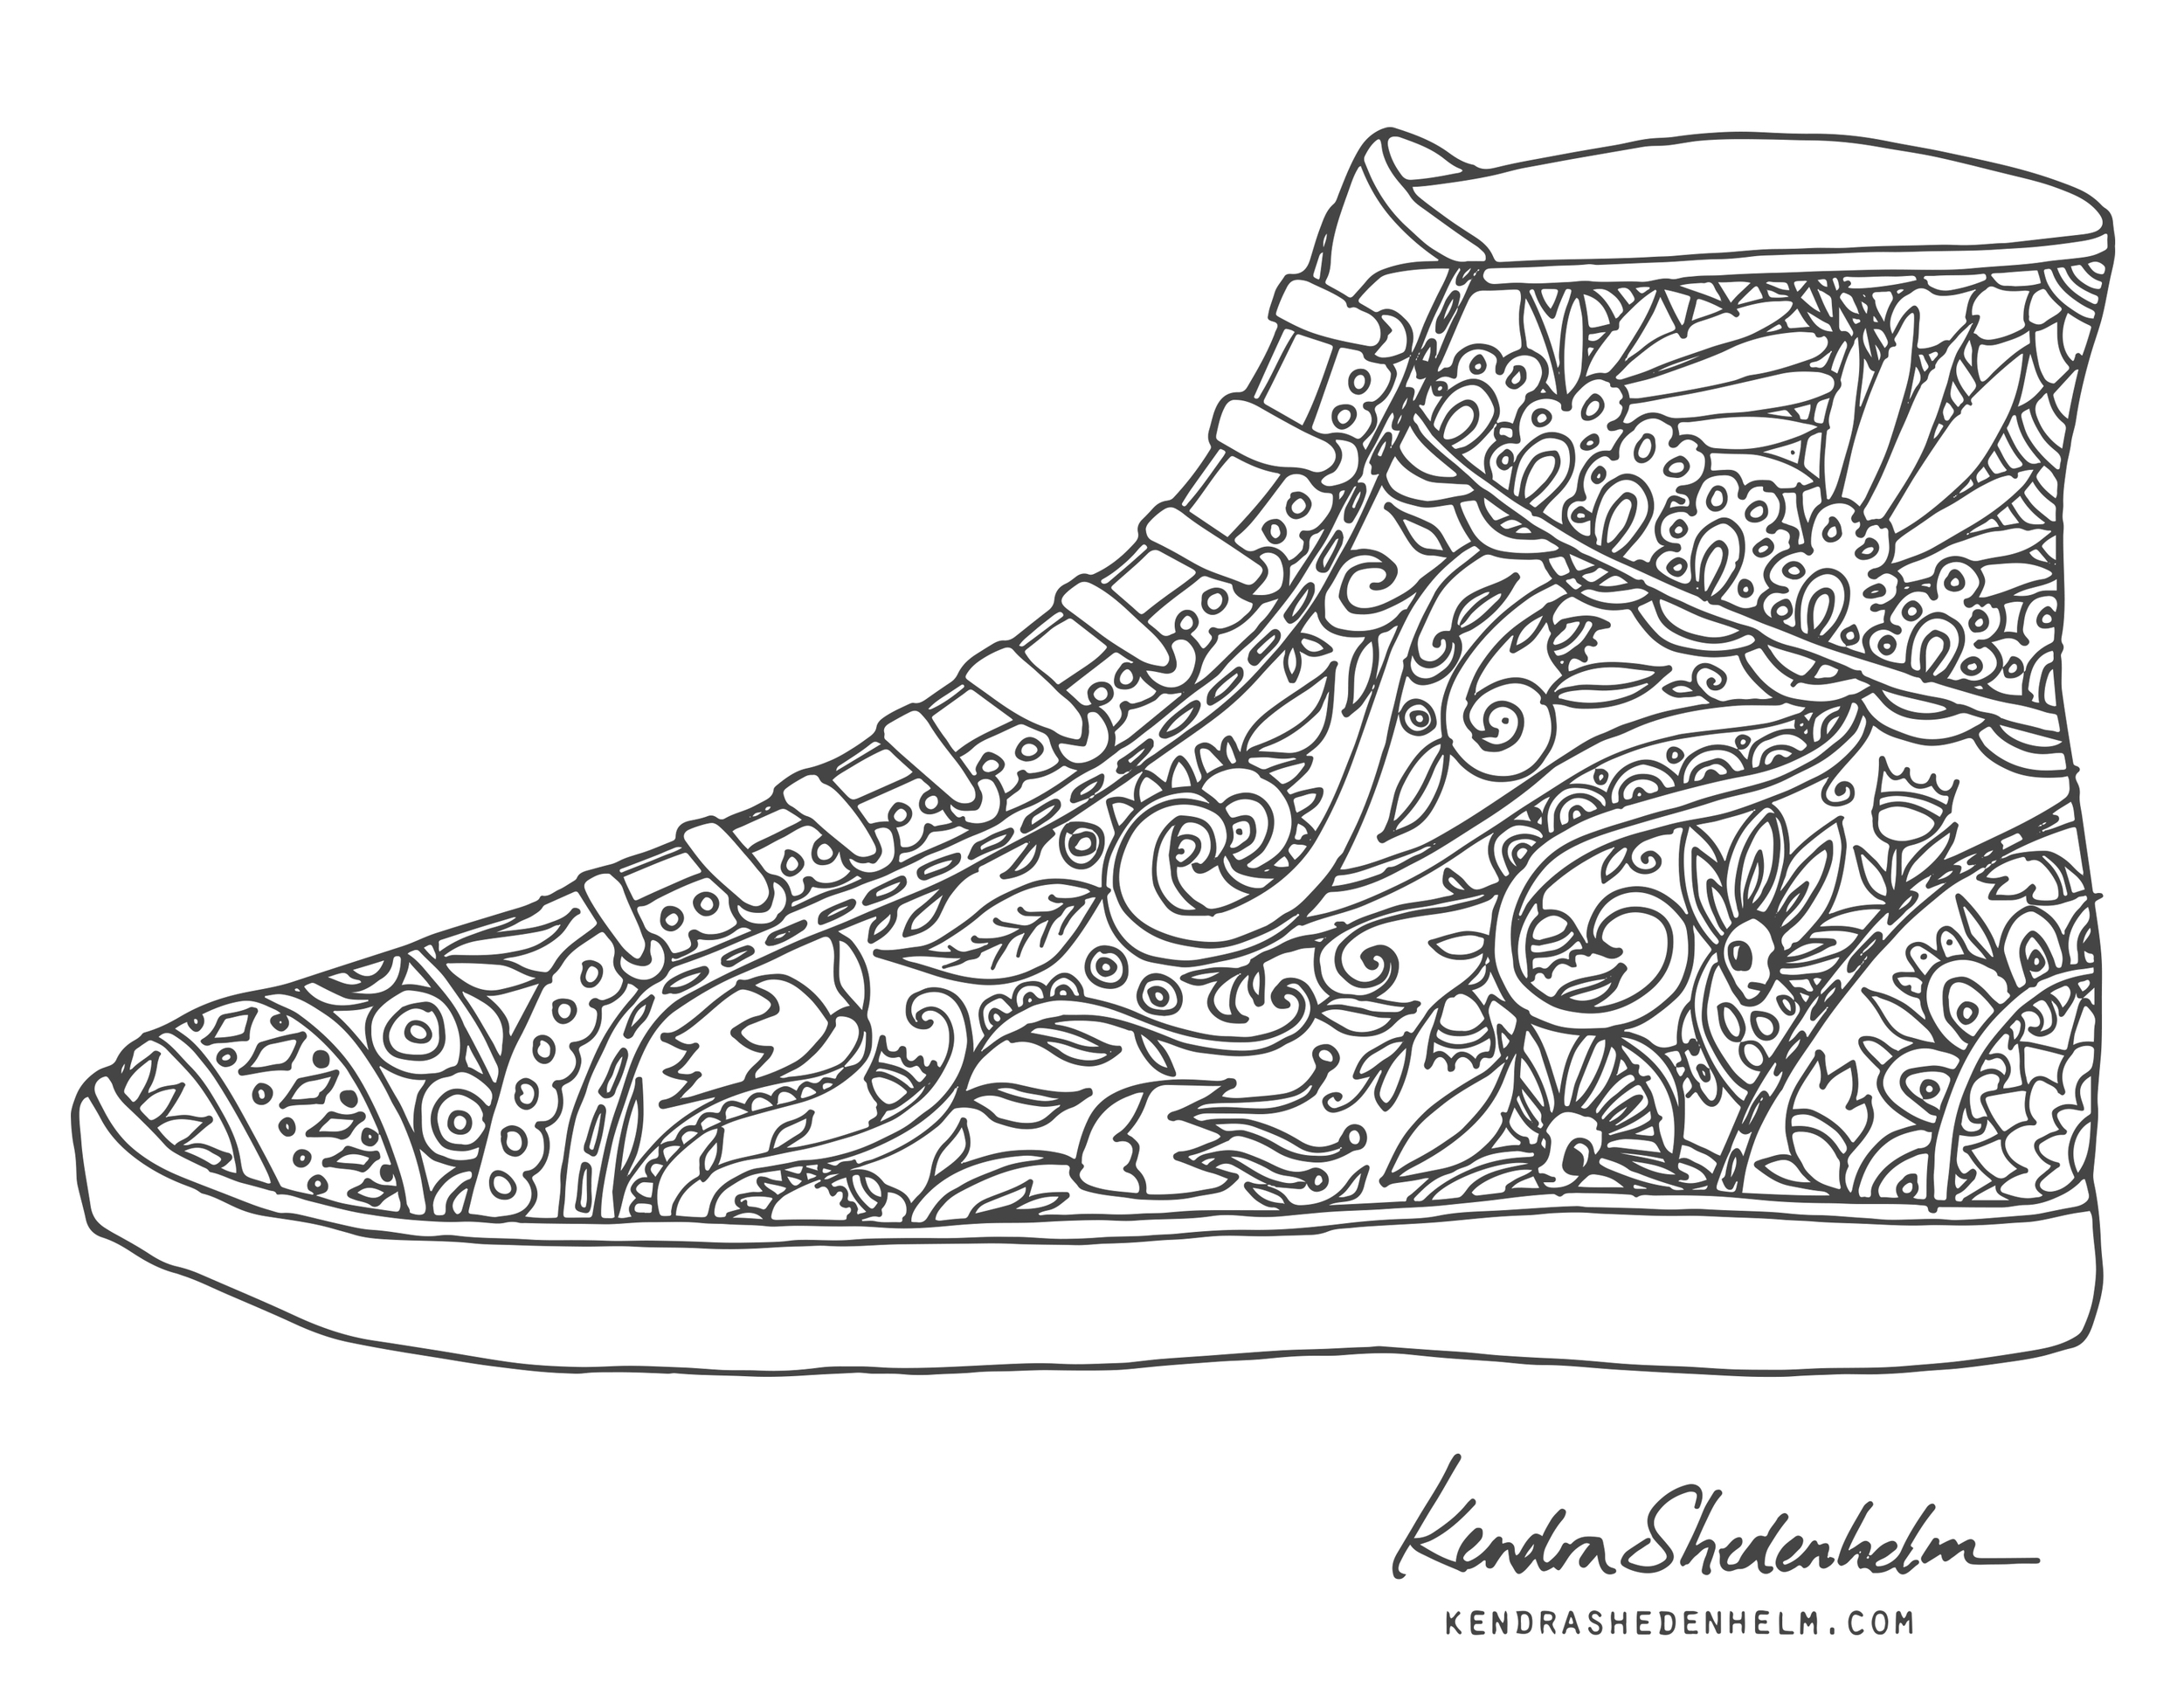 Kendra_Shedenhelm_Coloring-Pages_Shoe_1.jpg